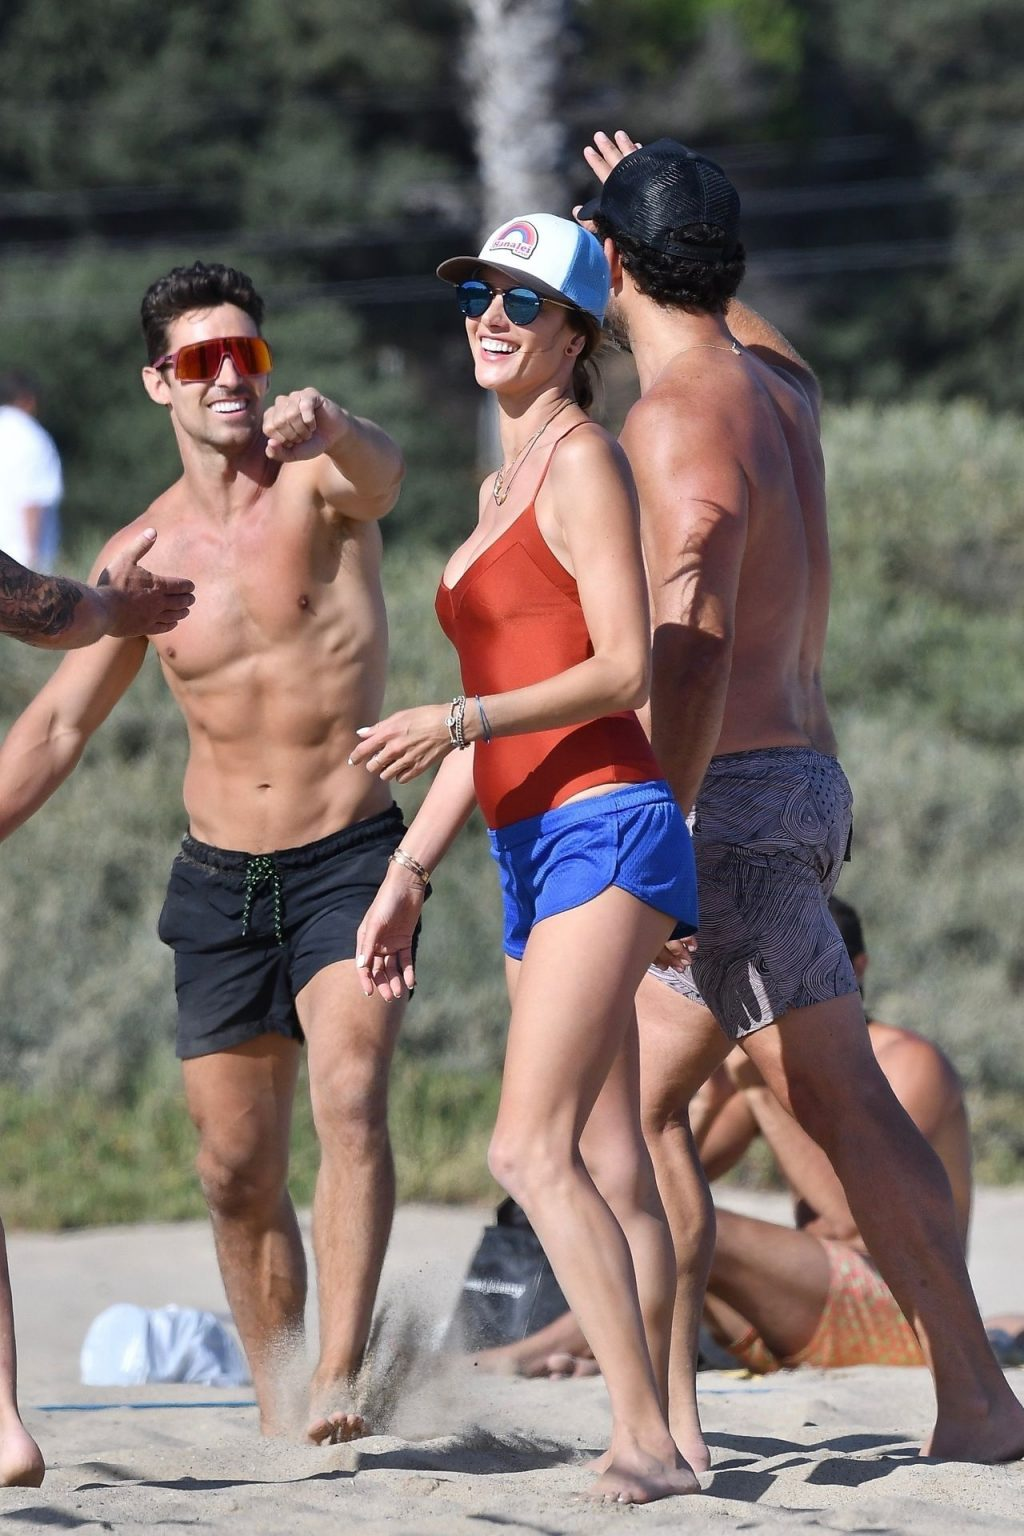 Alessandra Ambrosio Plays Volleyball at the Beach with Friends (70 Photos)